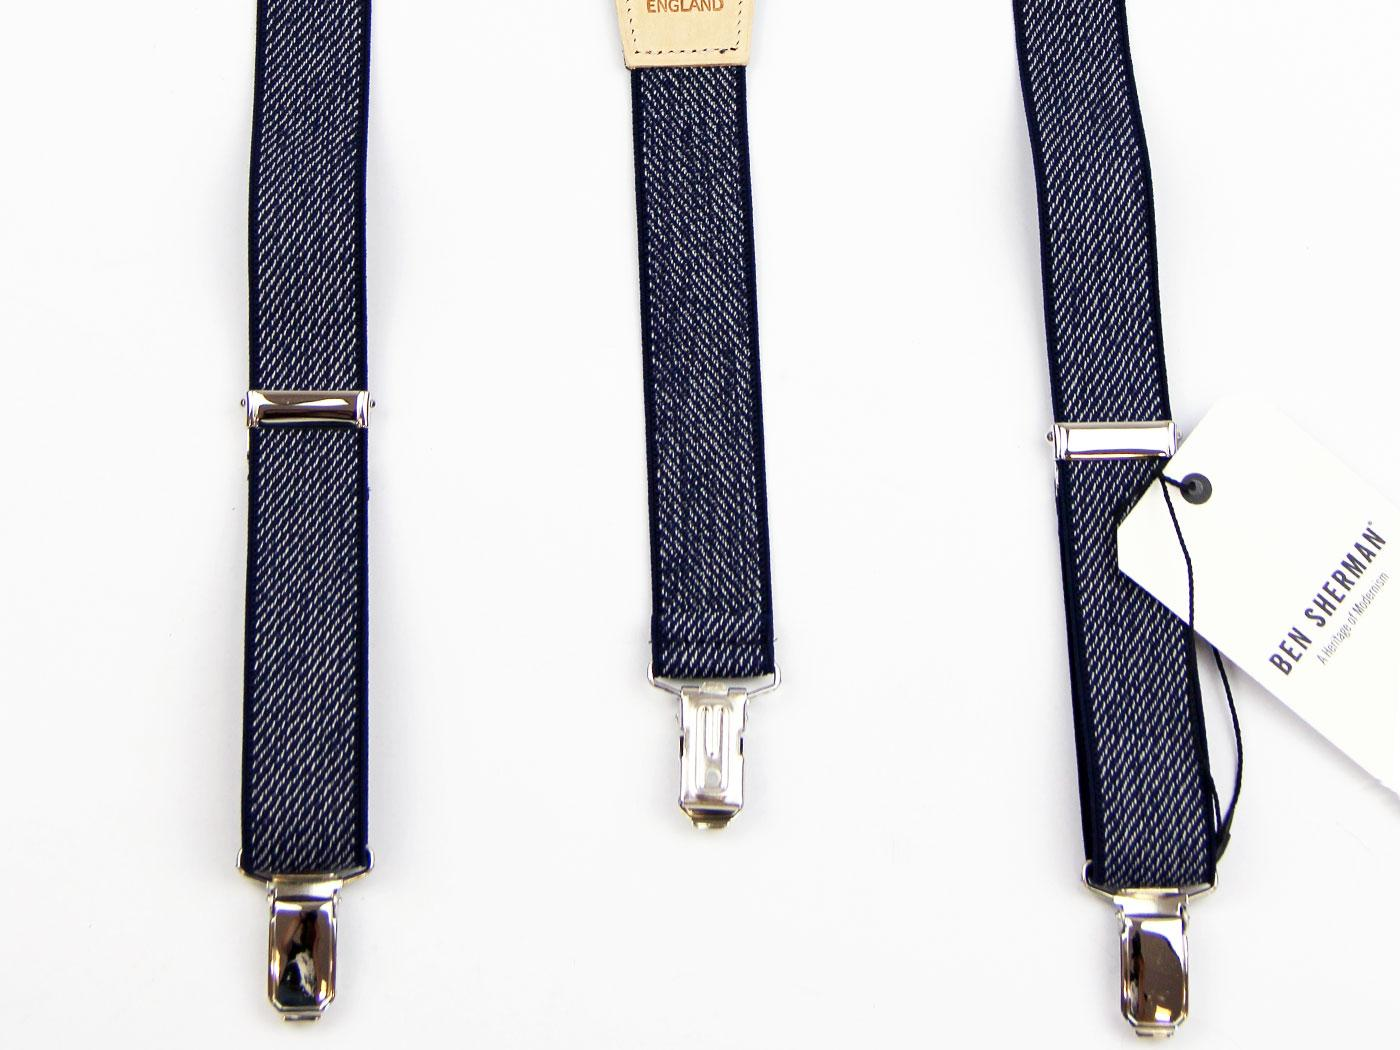 Ben Sherman Made In England Retro Mod Braces (N)